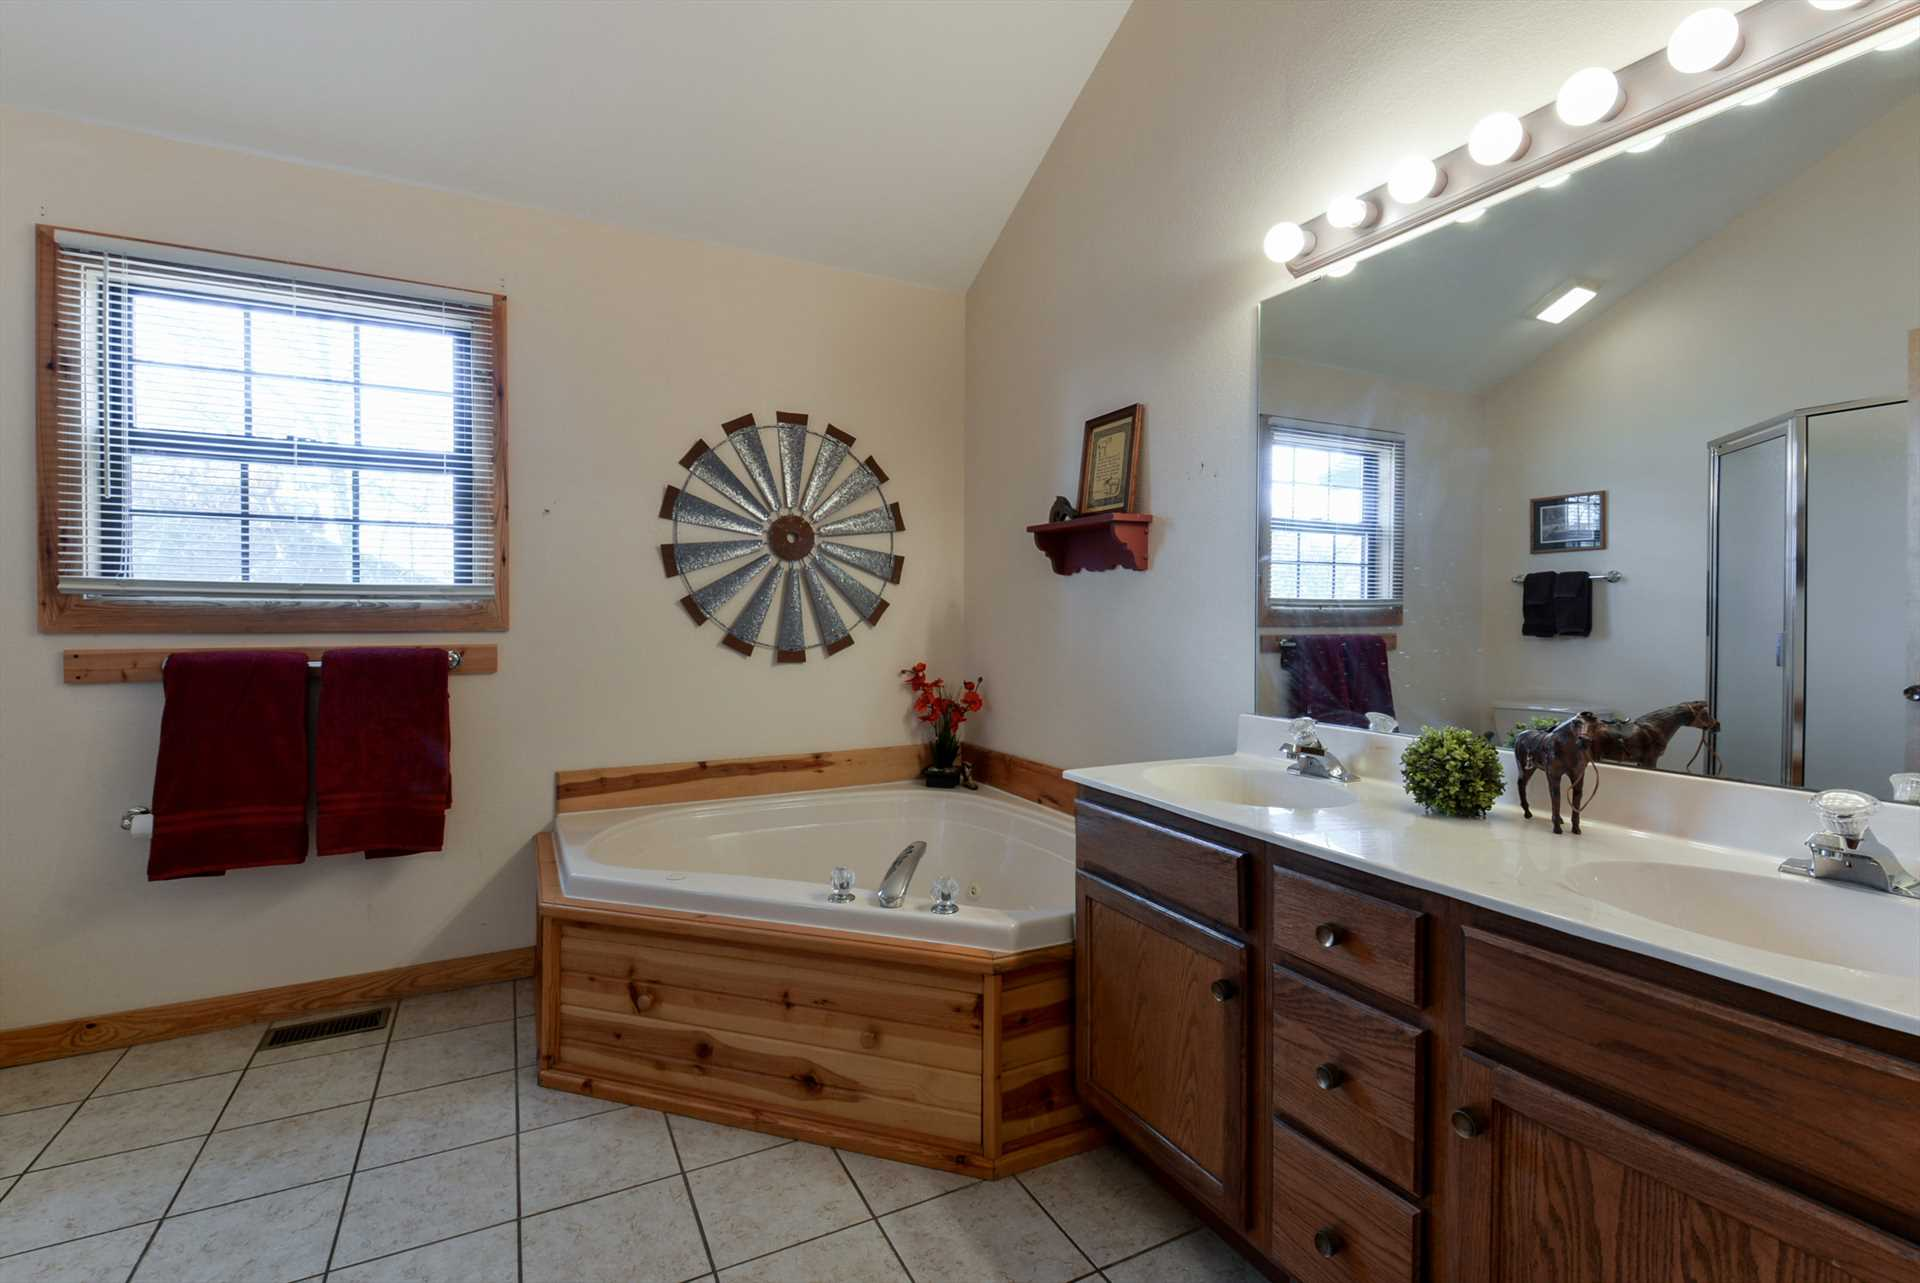 Both bathrooms include walk-in showers and whirlpool tubs.